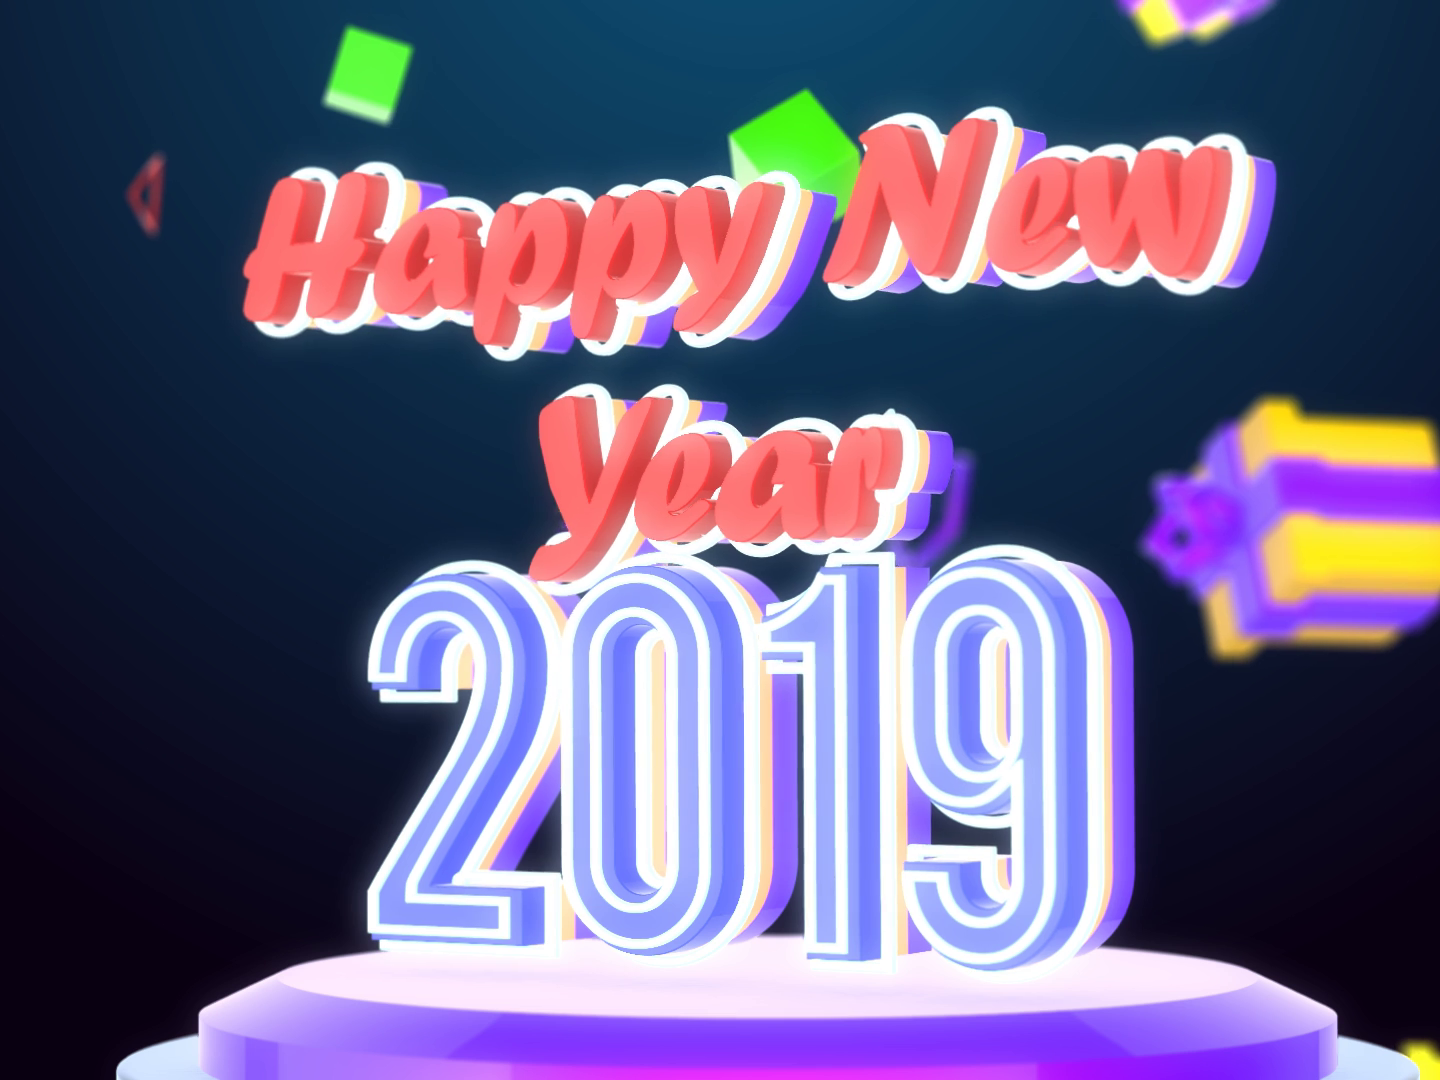 Happy New Year 2019 after effects & element 3D tutorial rendering lighting element 3d 2019 happy new year motion pictures mograph 3d motion graphics 3d motion design 3d design motion design motion graphics adobe after effects after effects tutorial